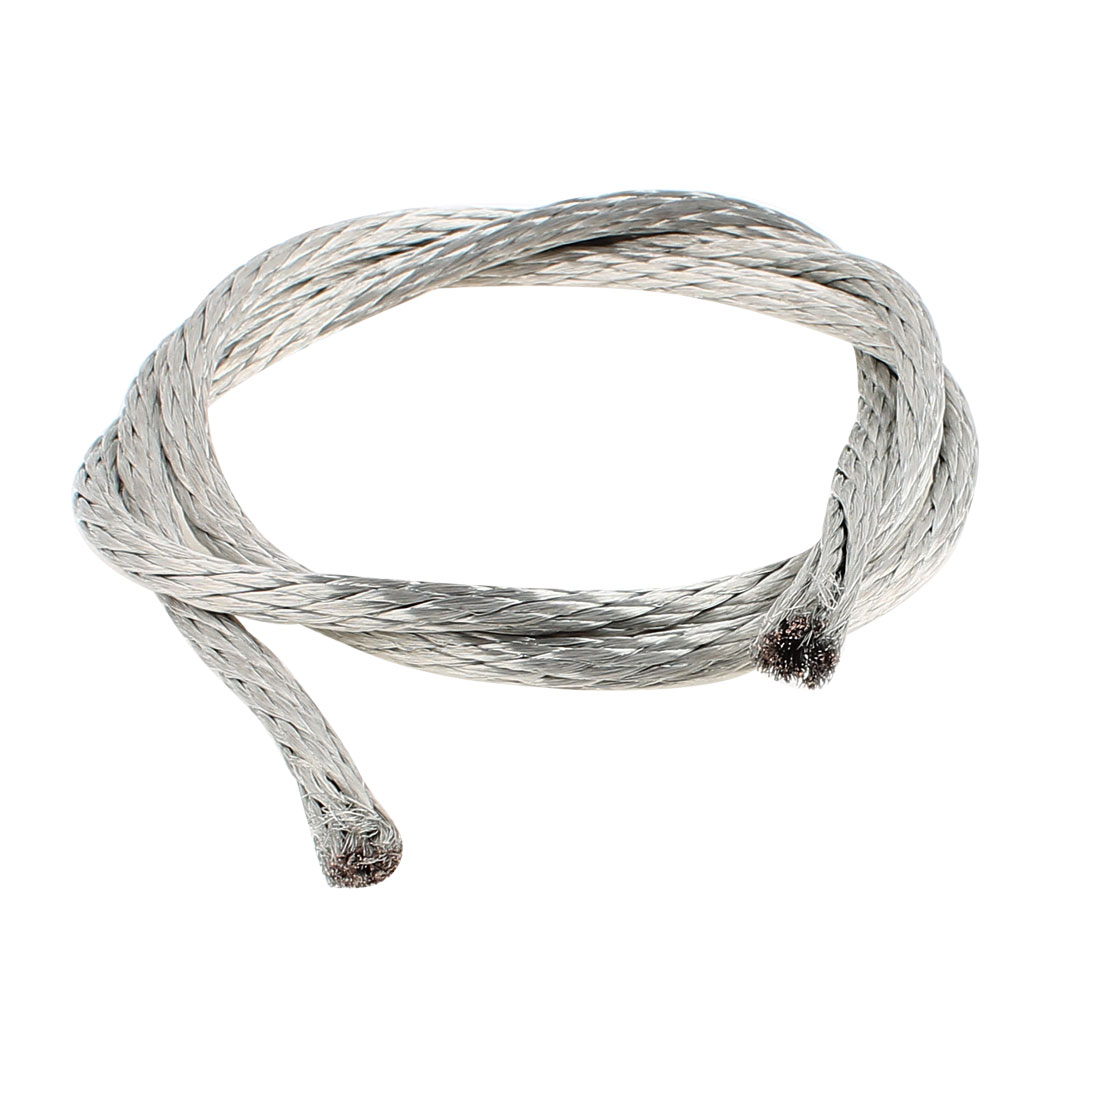 16 Square Millimeter Thickness 1M Length Tubular Bare Tined Braided Copper Wire